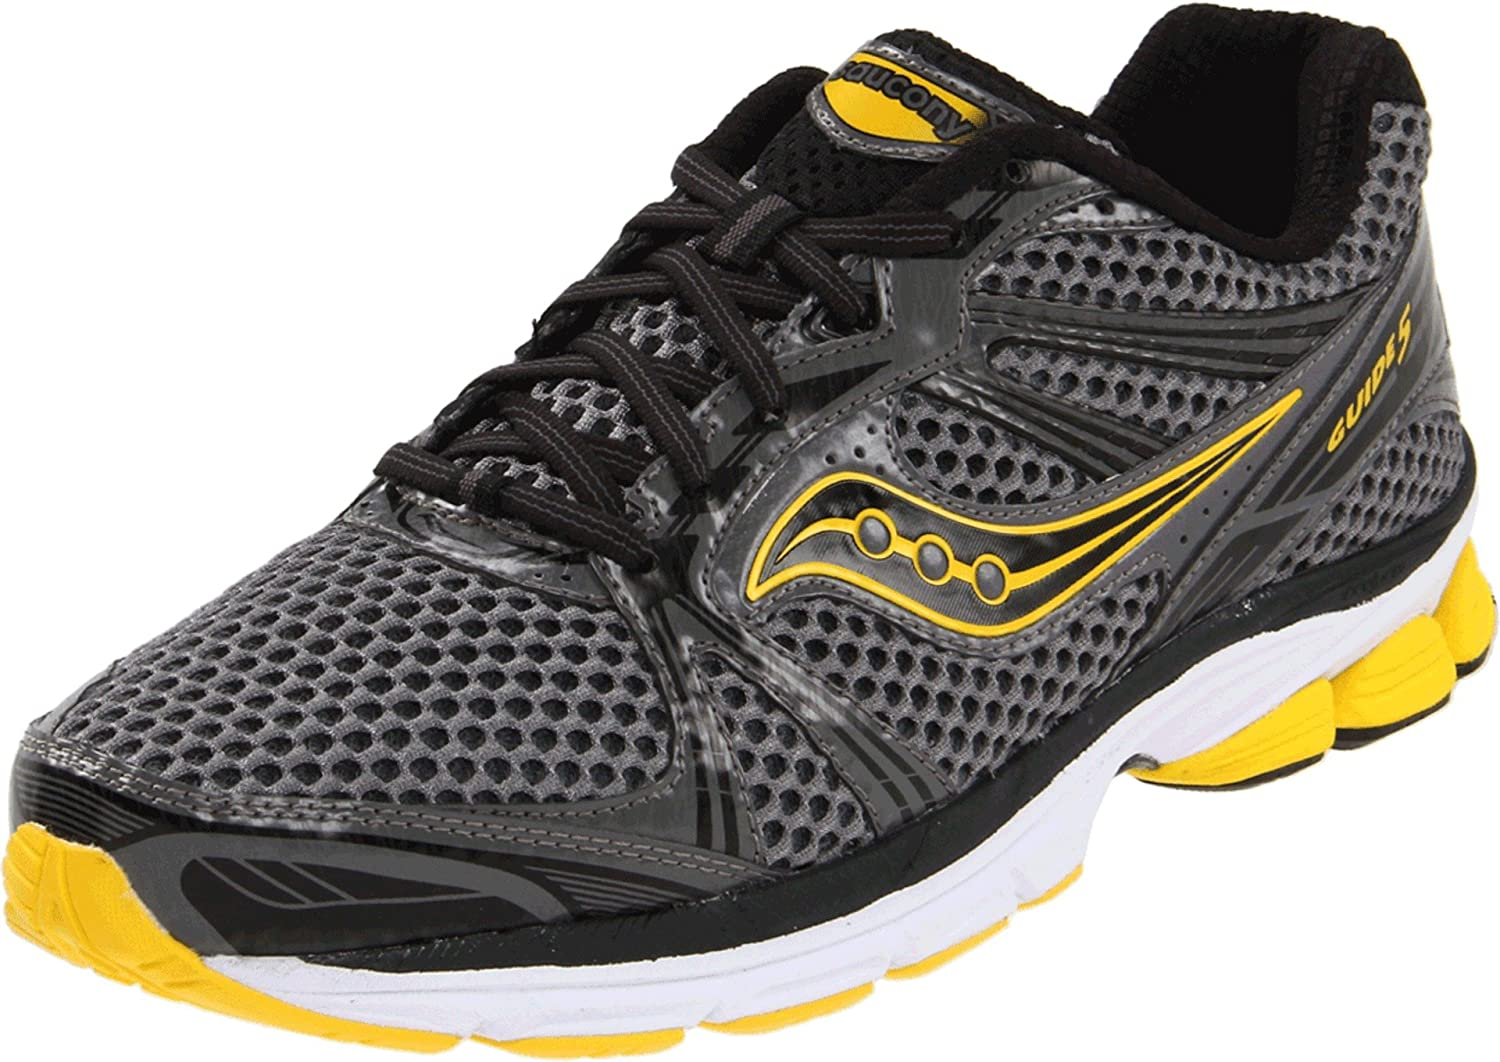 Saucony Men's Progrid Guide 5 Running Shoe Progrid Guide 5-M